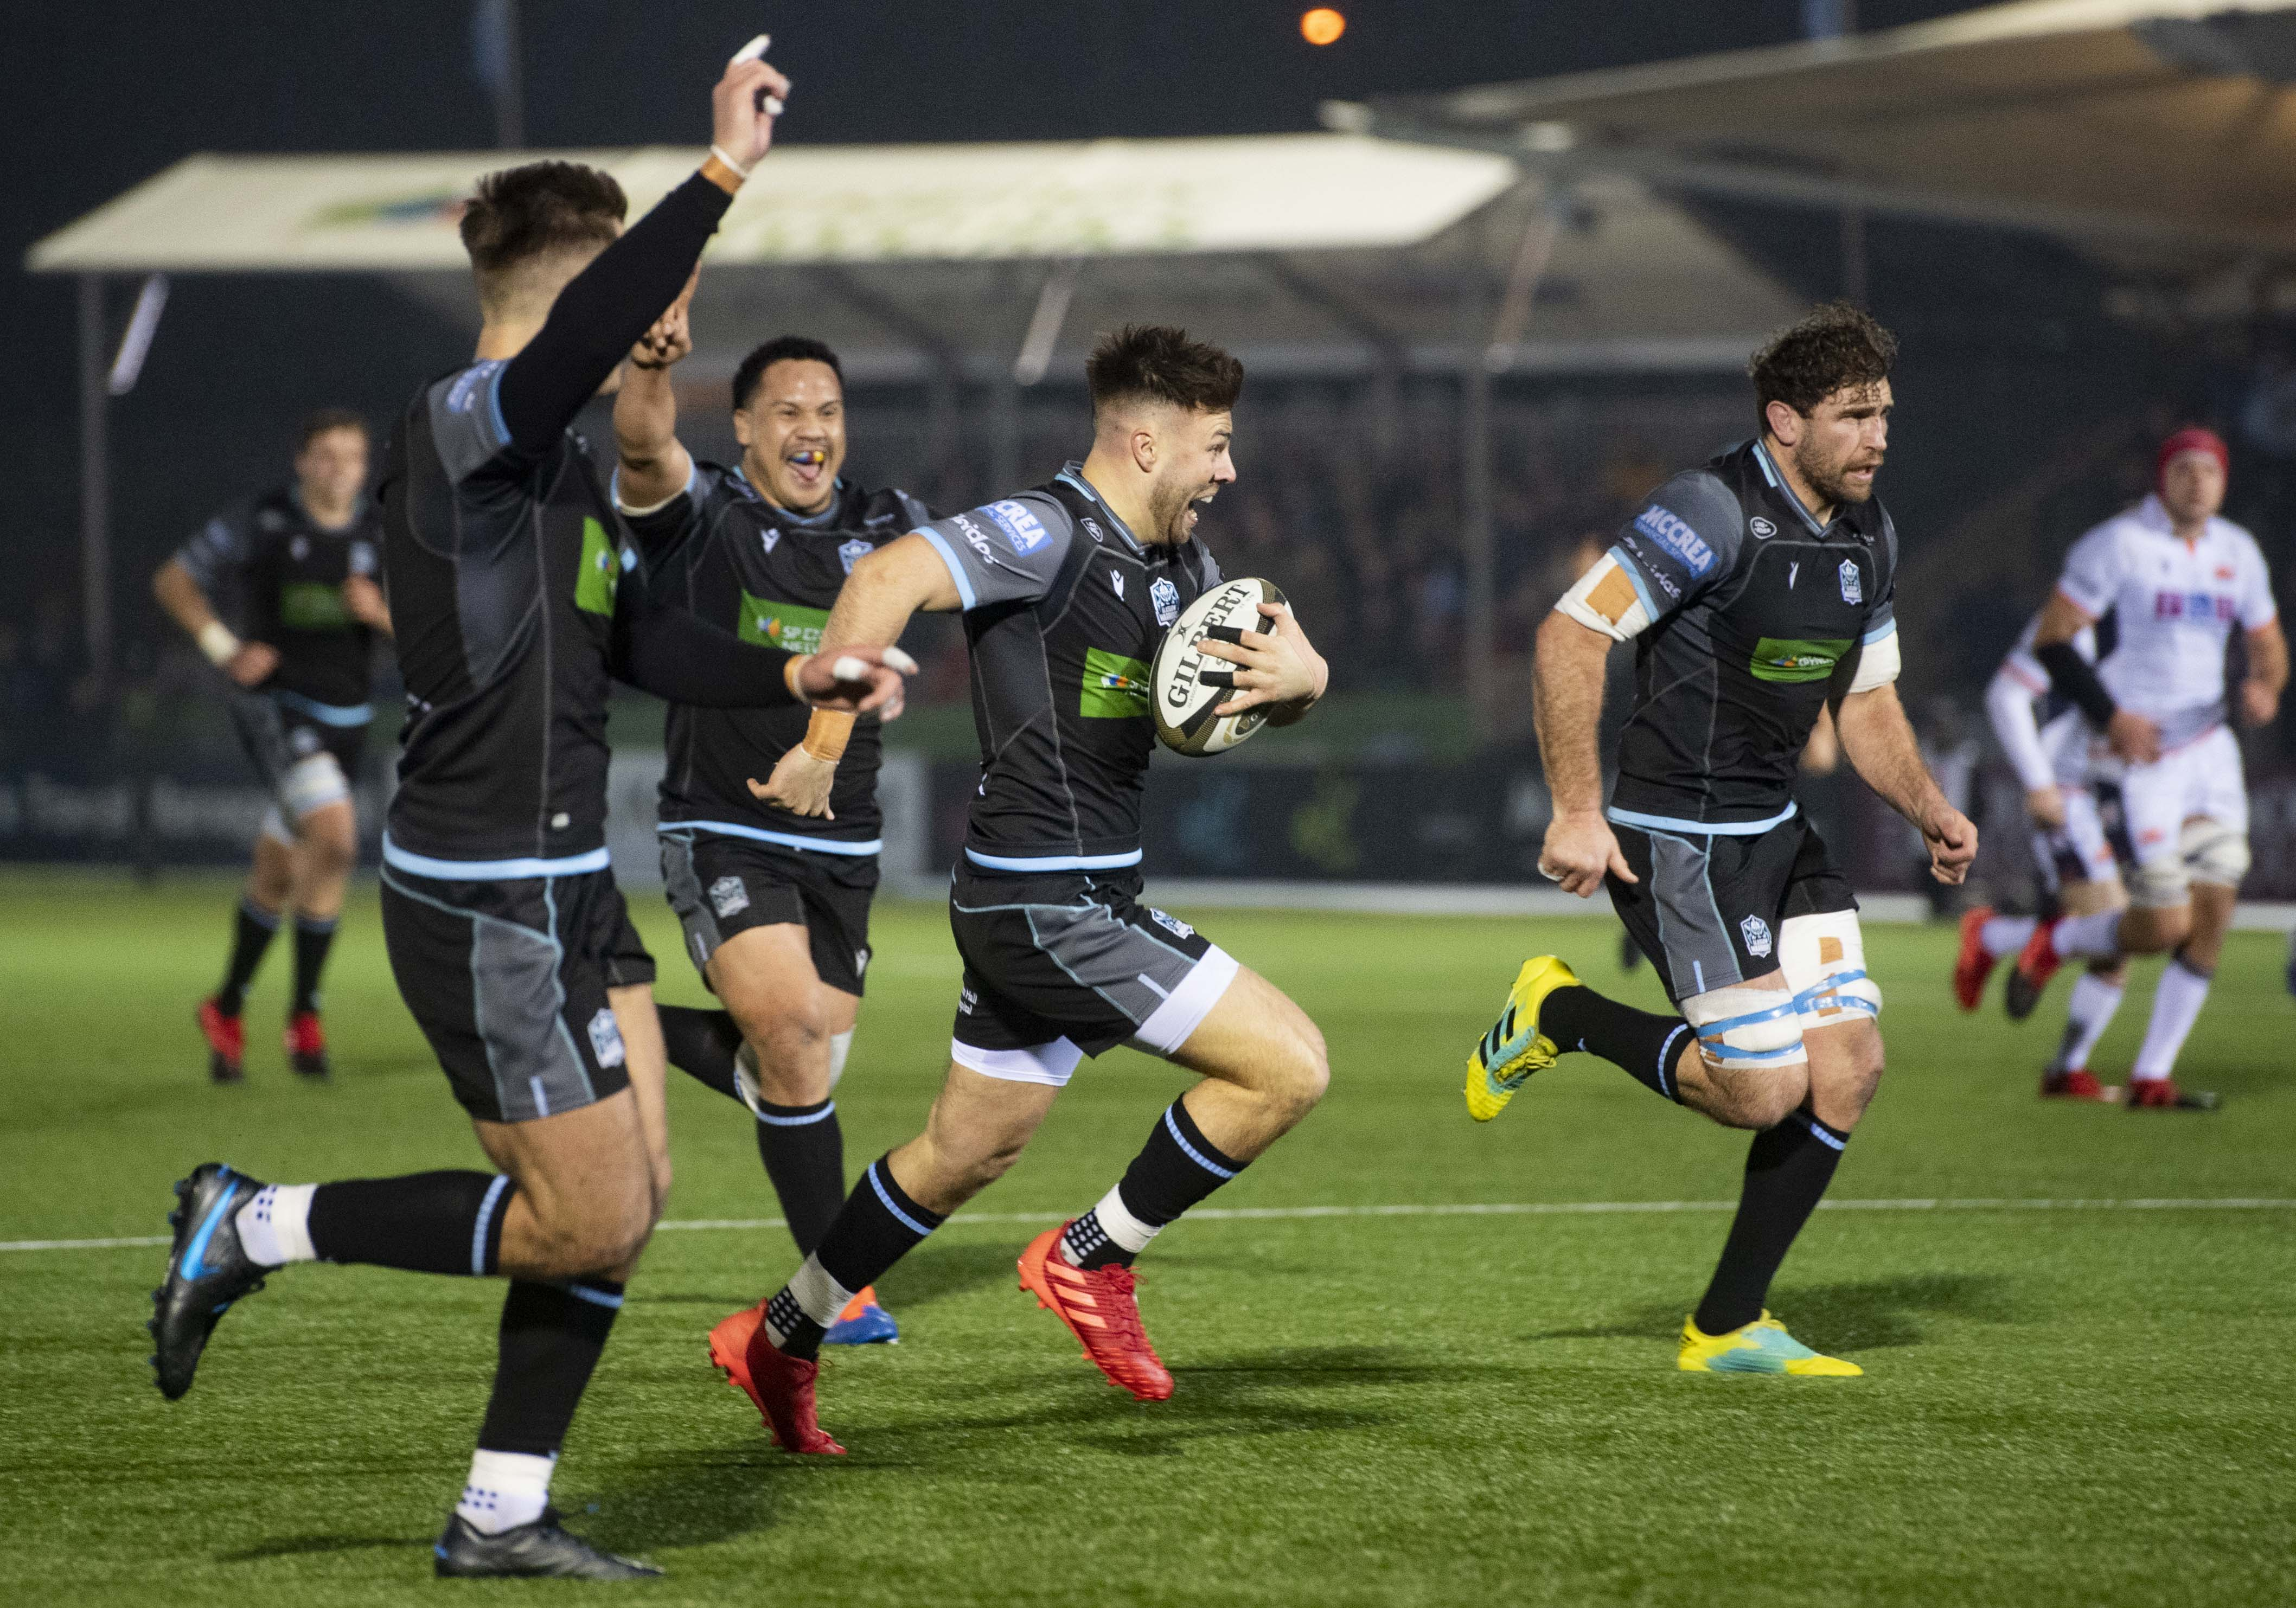 Ali Price runs through to score the opening try during the 1872 Cup mathc at Scotstoun.